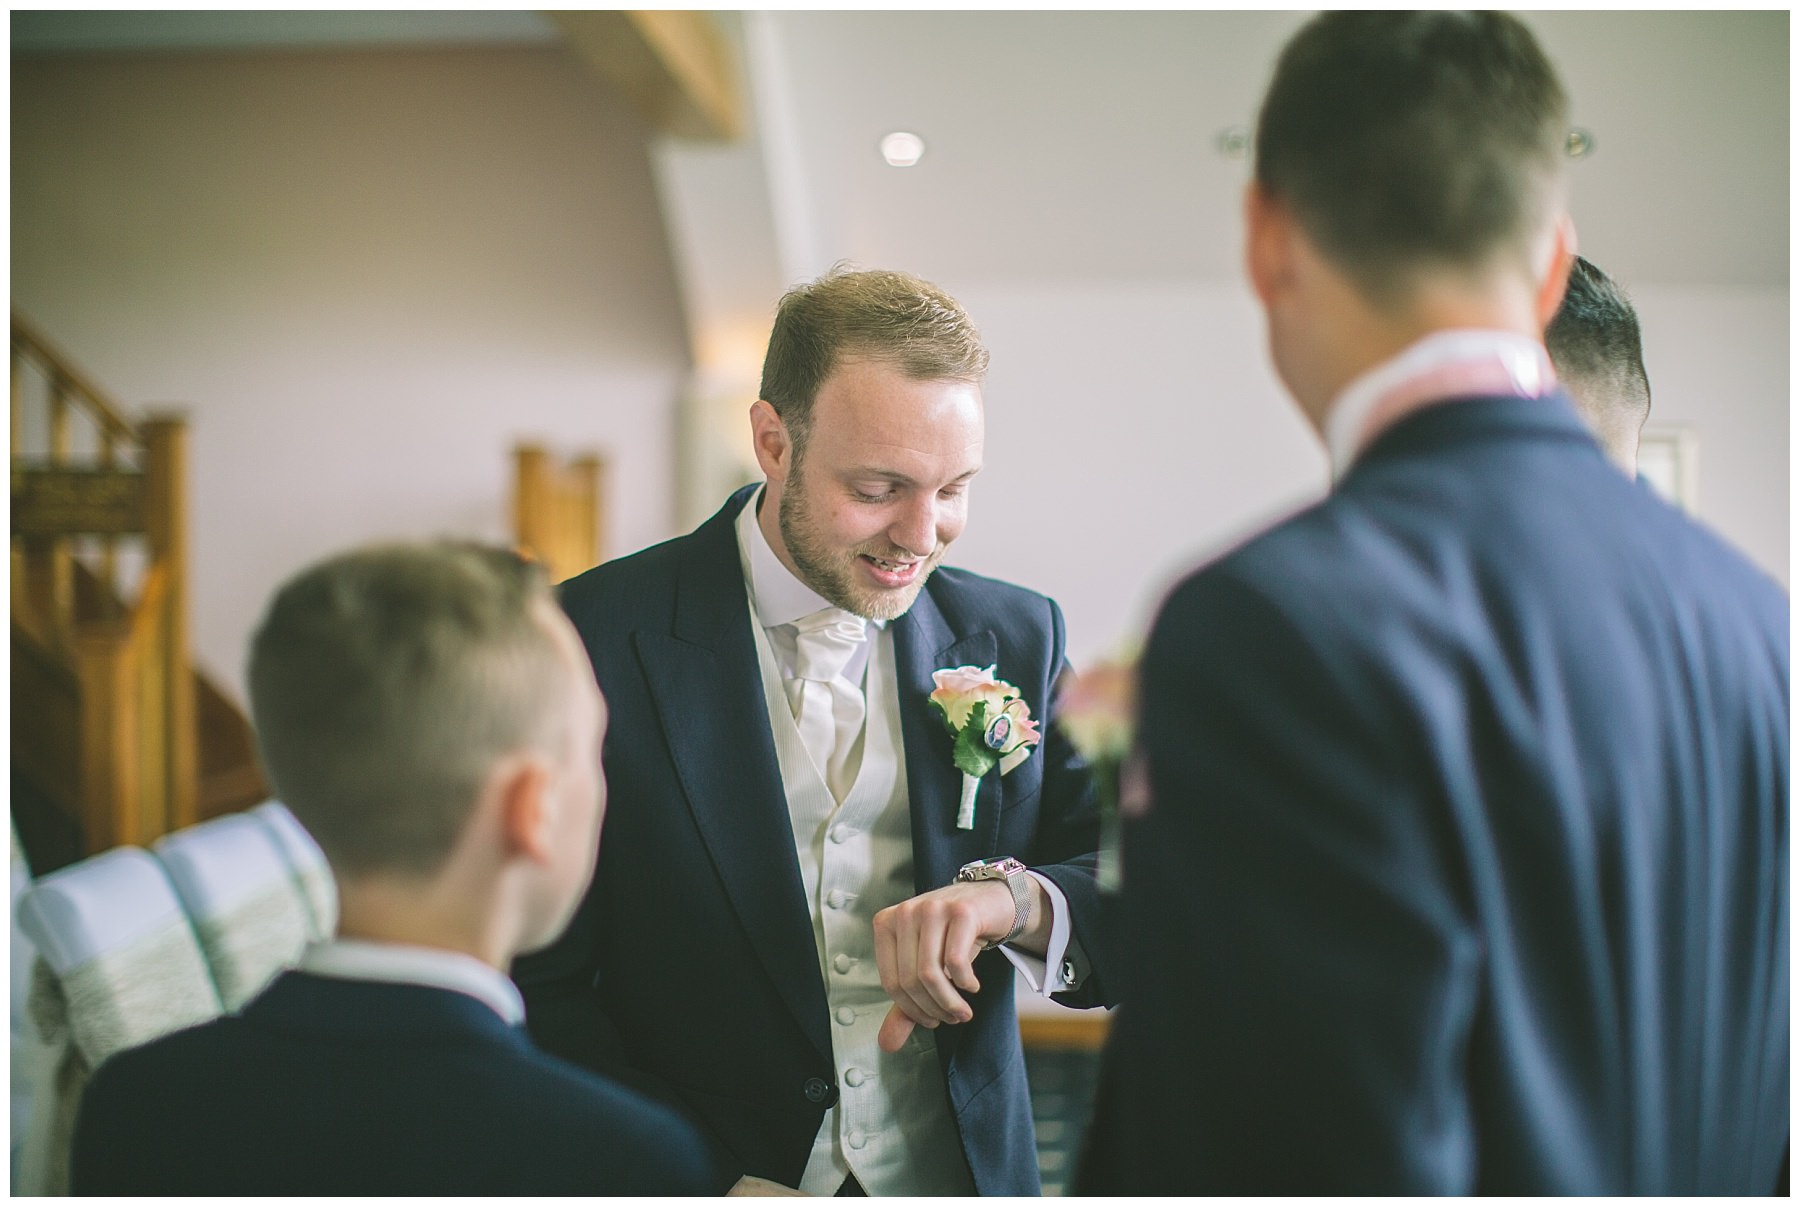 Groom checks his watch at Ramsbottom wedding